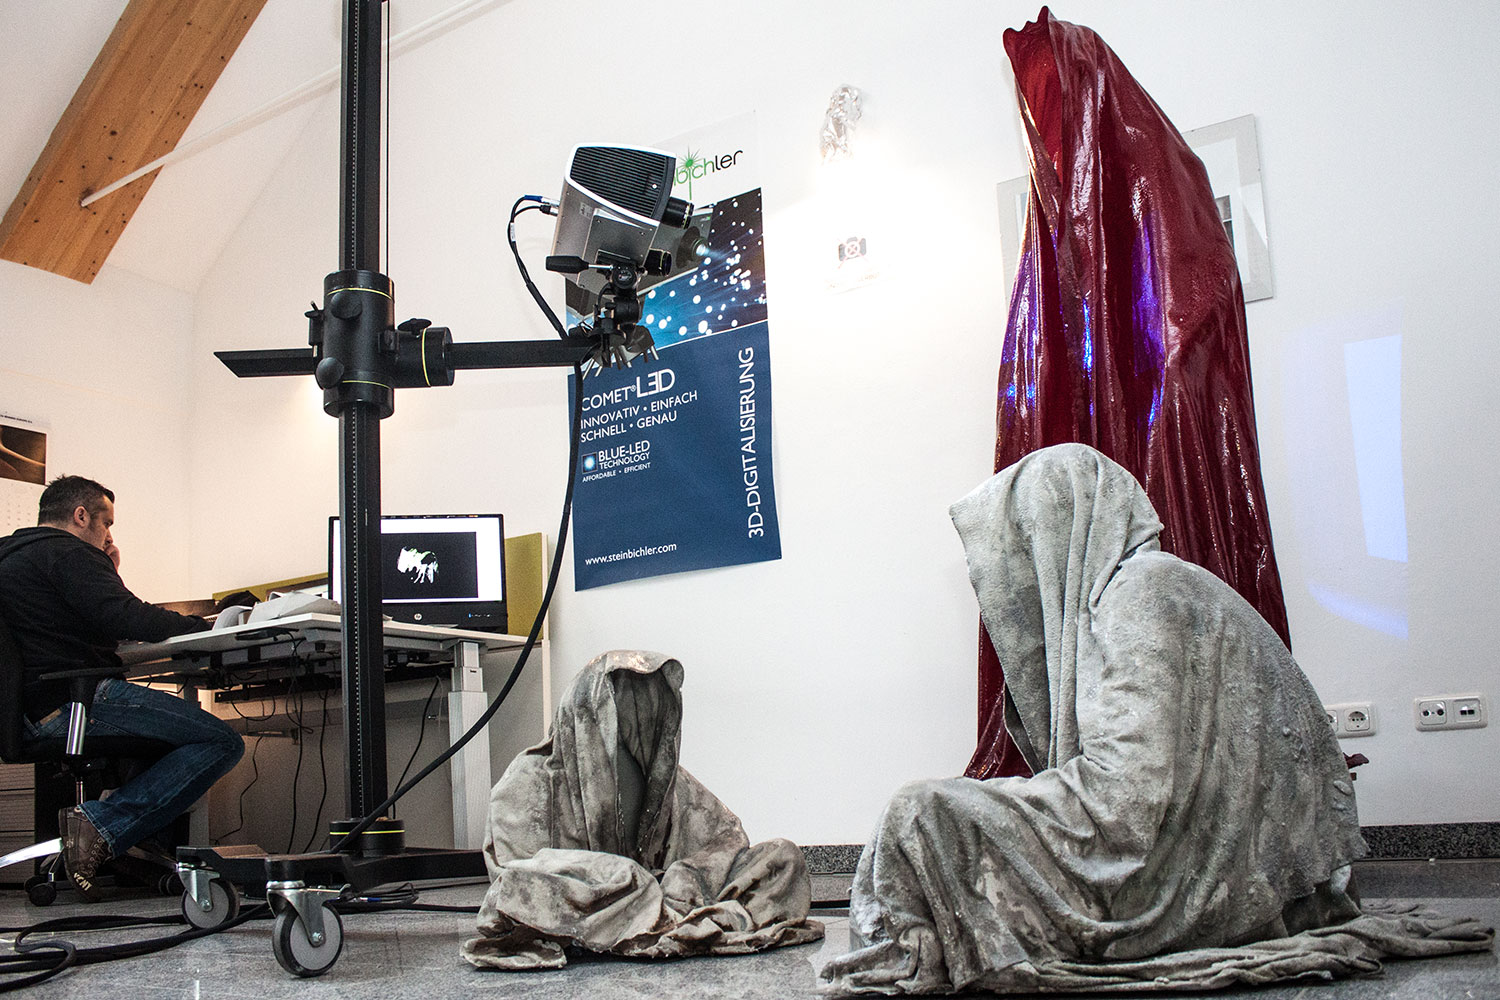 3d-printing-prints-scan-digital-form-shape-sculpture-statue-haratech-modern-contemporary-art-arts-arte-guardians-of-time-ghost-cloak-shroud-faceless-manfred-kielnhofer-9635